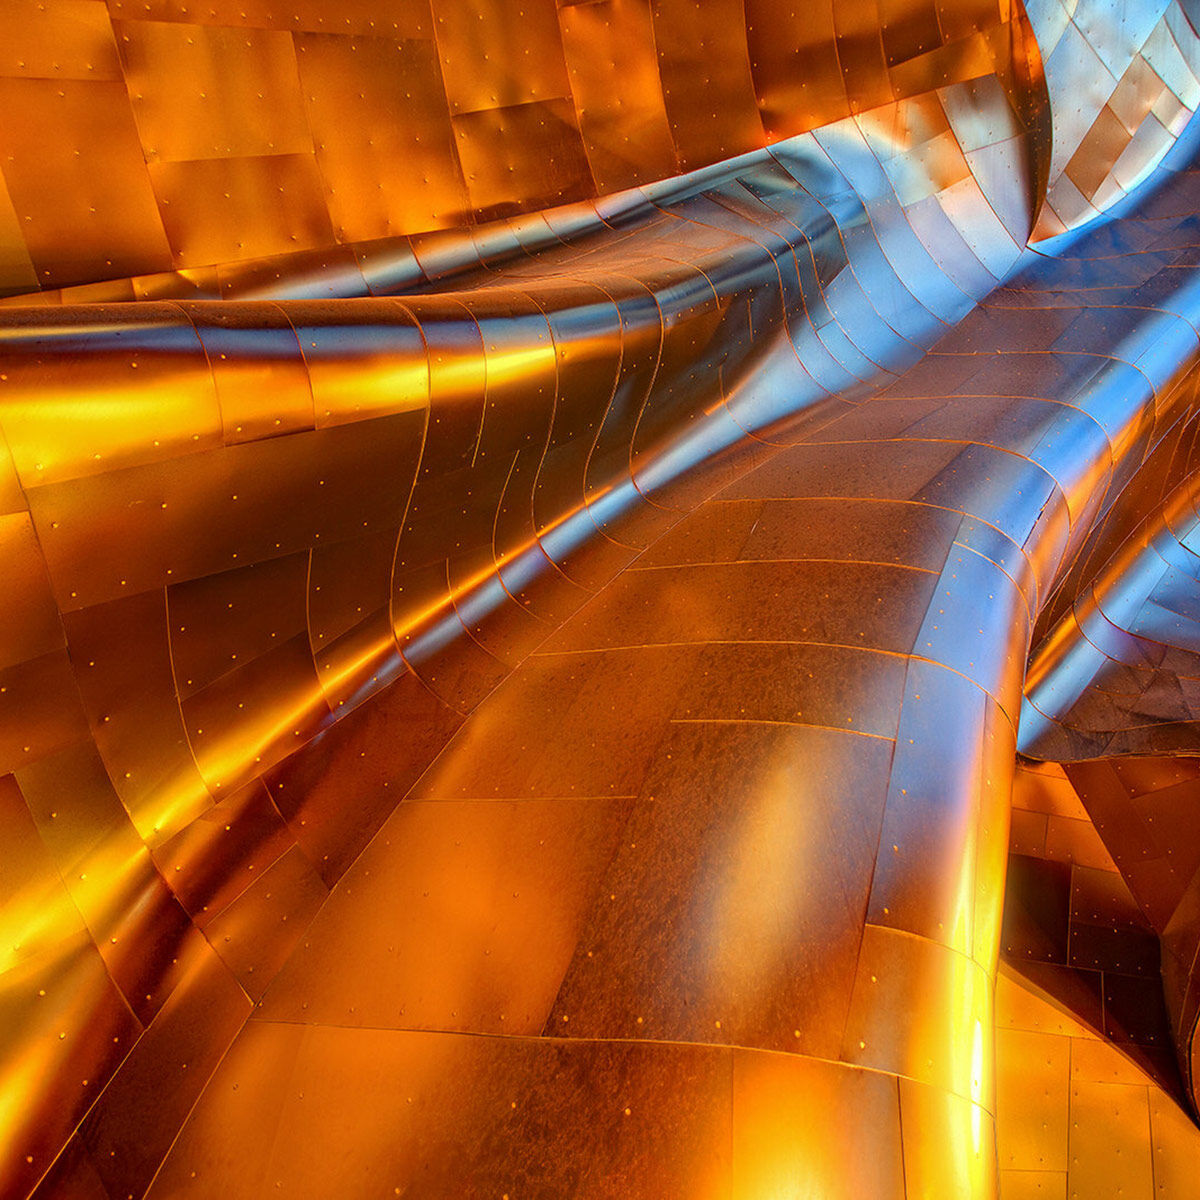 A fine art photograph of the exterior wall of the Experience Music Project in Seattle, Washington.